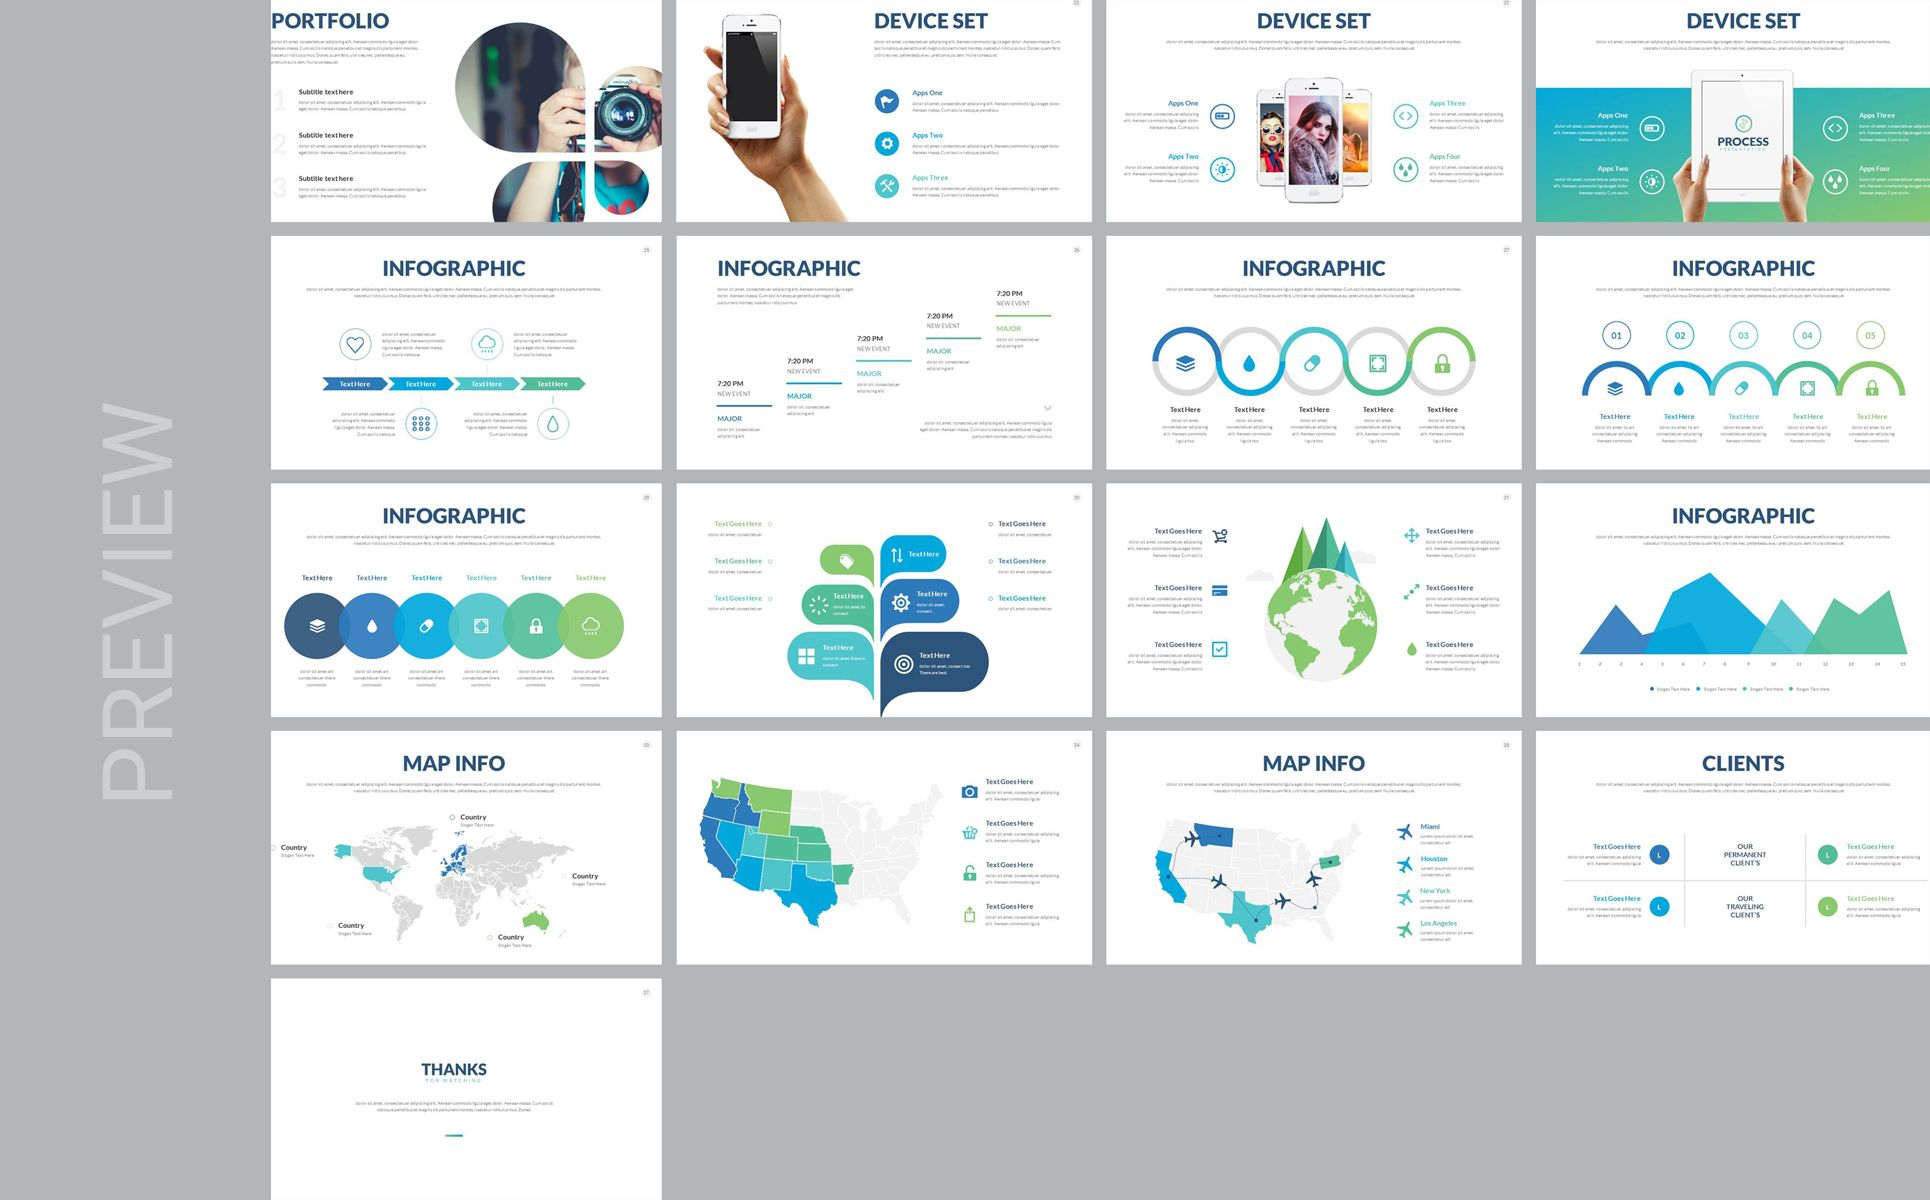 Process Multipurpose PowerPoint Template 74686 (With